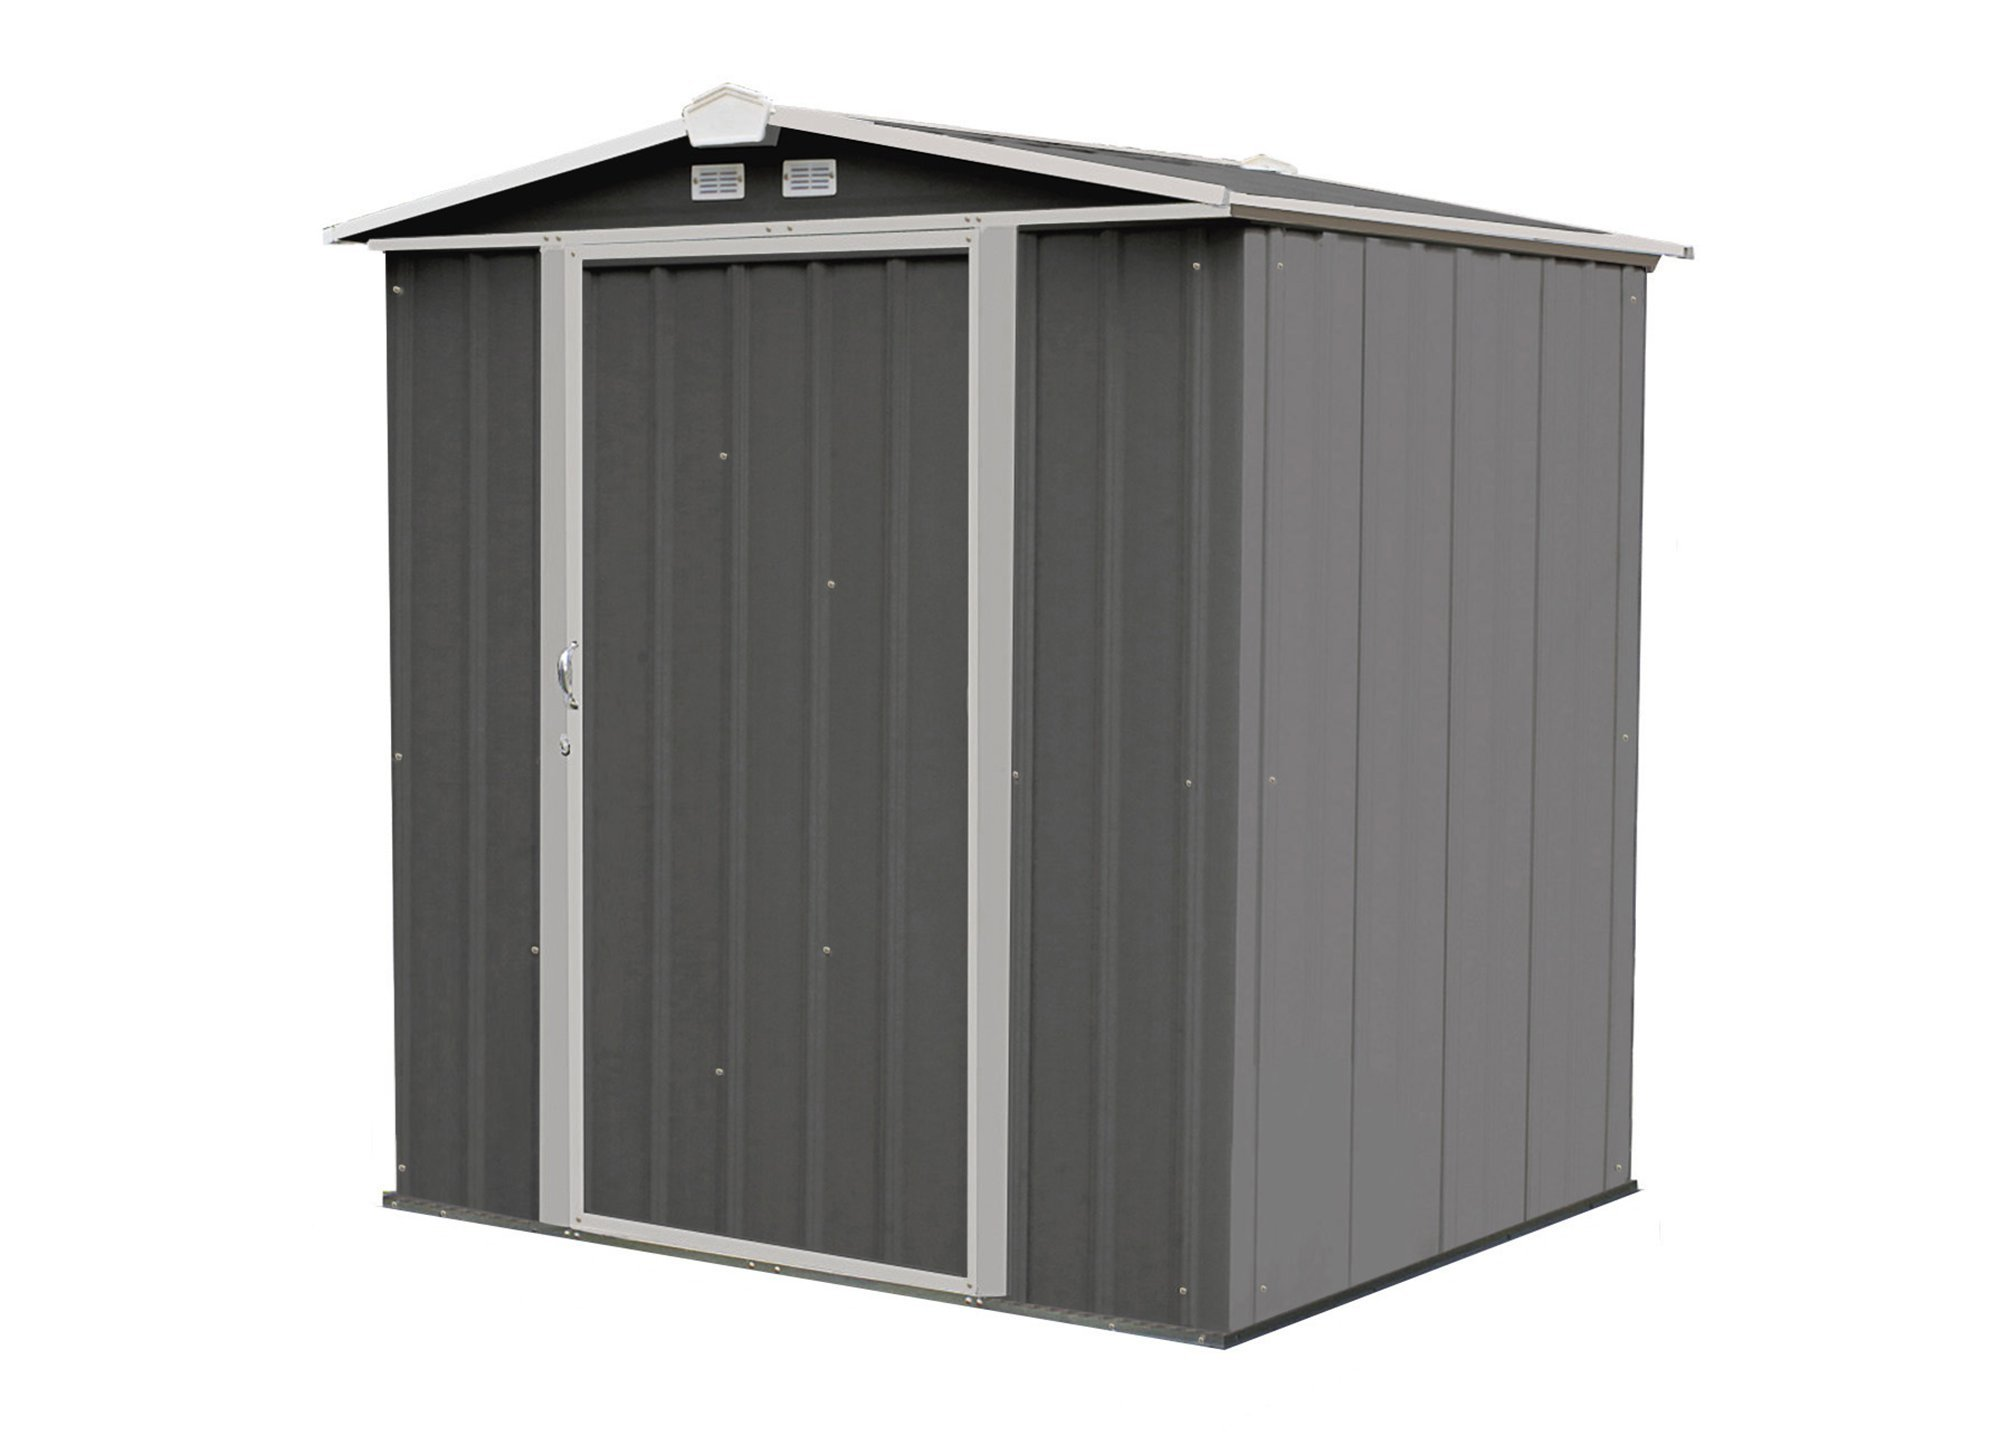 Arrow EZ6565LVCCCR 6' x 5' Steel Storage Shed in Charcoal with Cream Trim